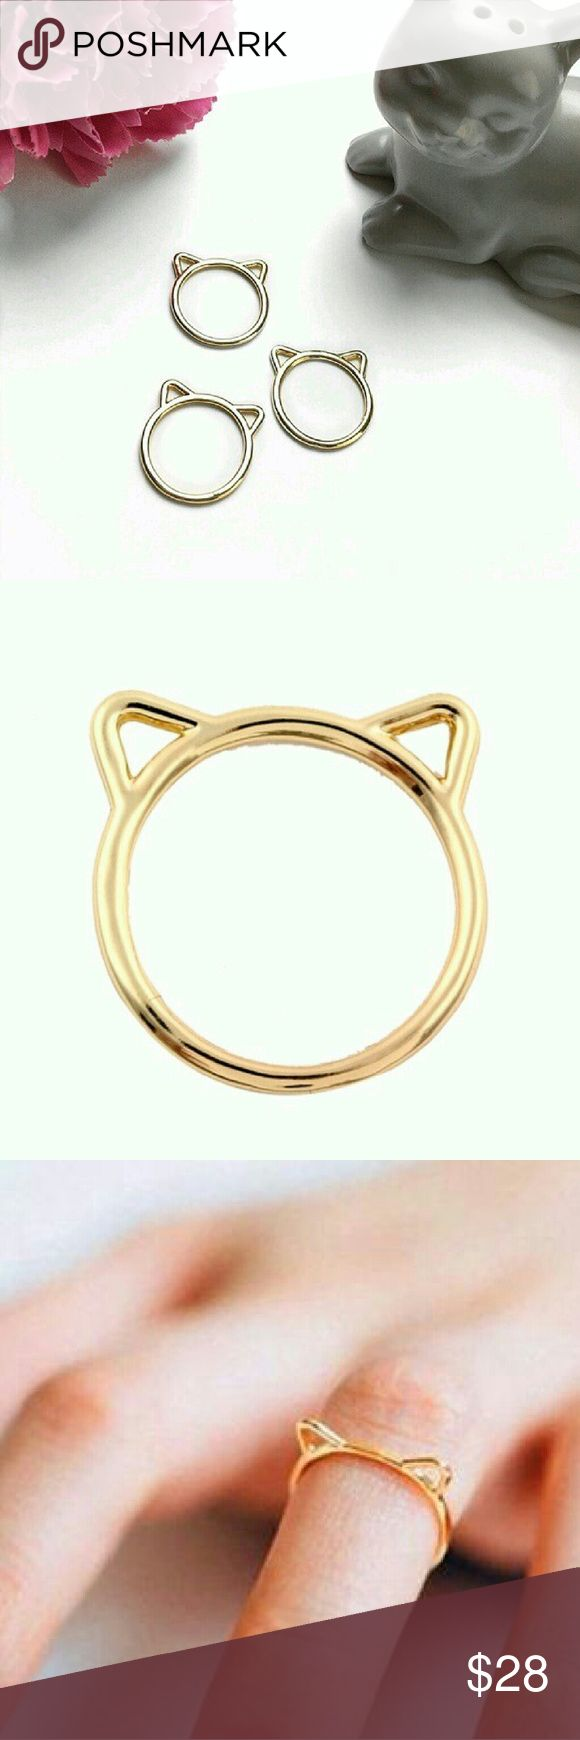 14K Kitty Kat Ring 14K gold cat / kitty ears ring from WILA.  Currently 5 available in Size 7. Hurry and get one meow! WILA Jewelry Rings